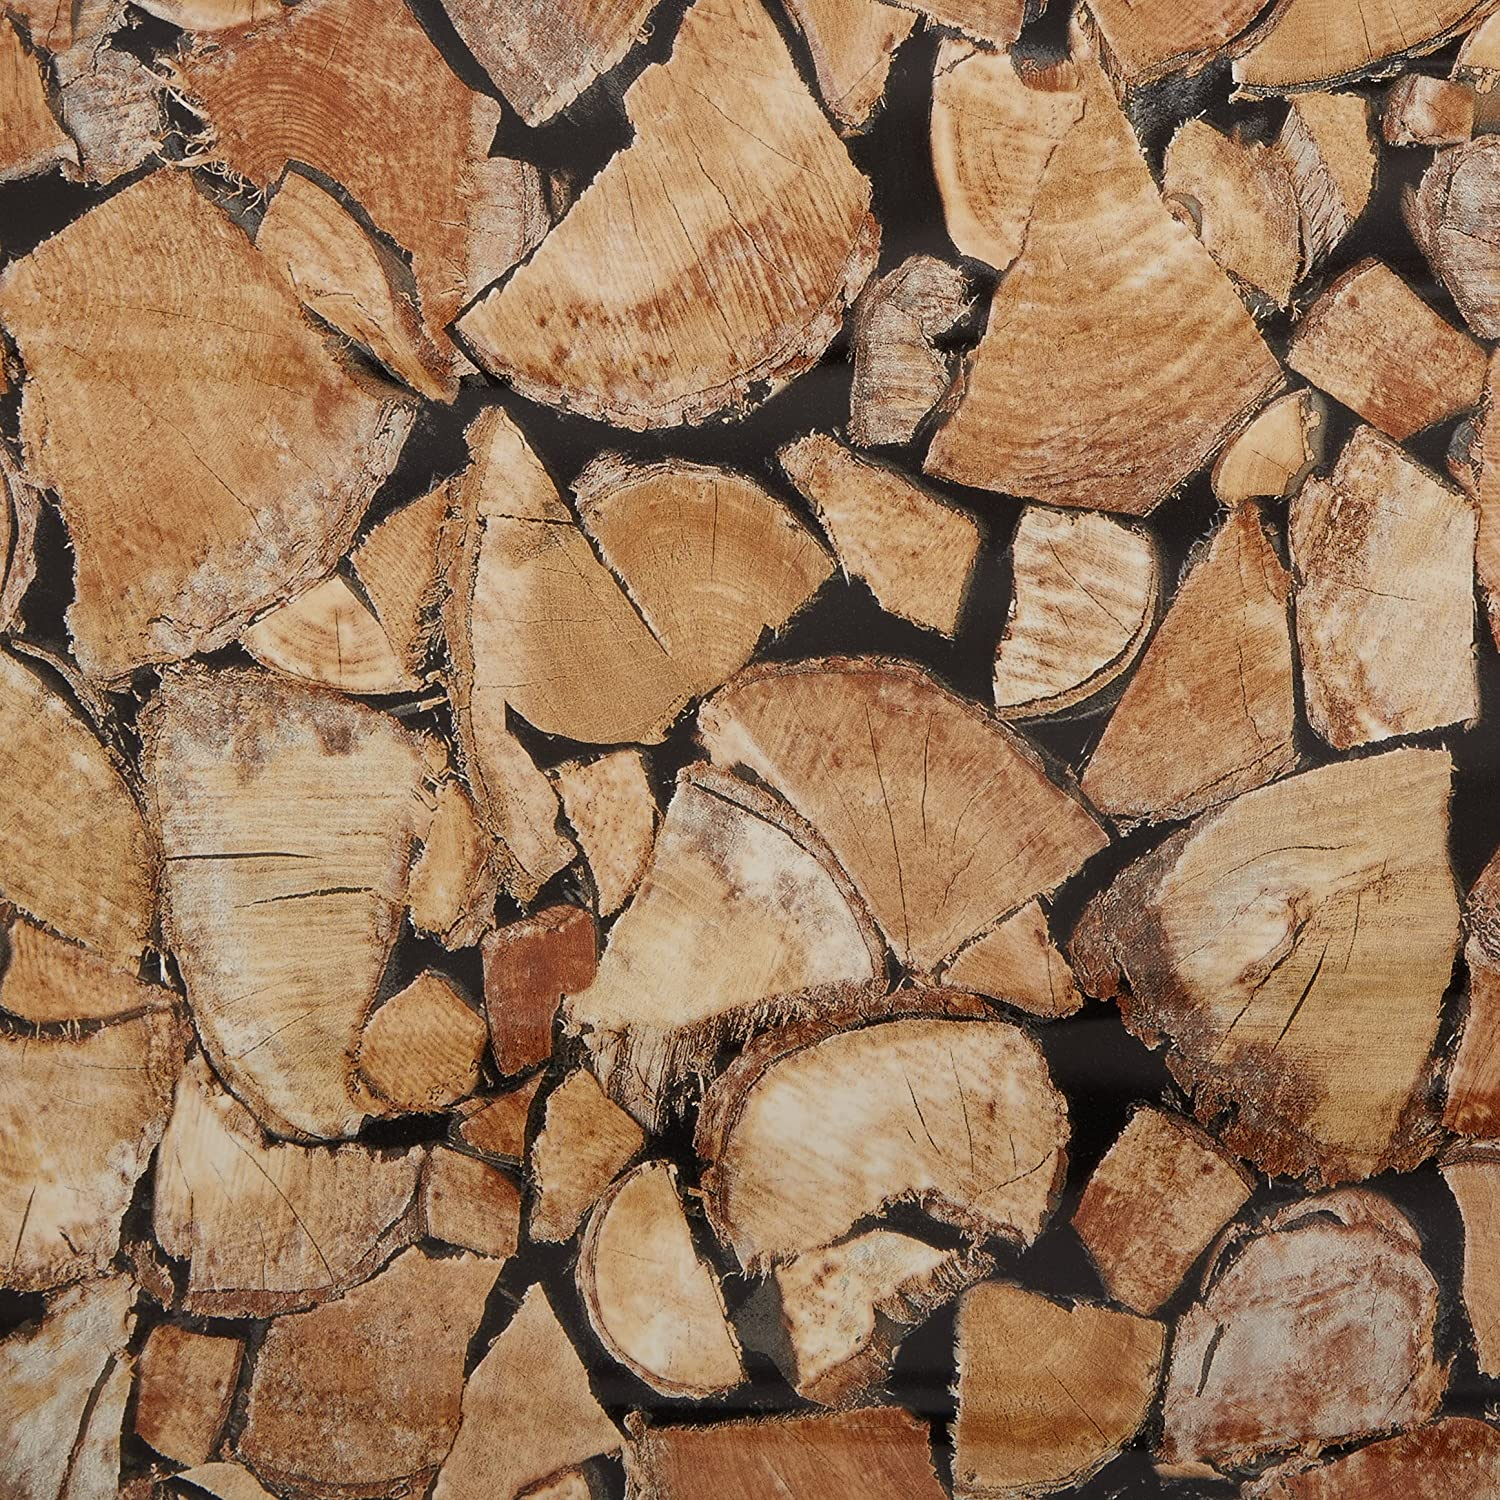 d-c-fix® Sticky Back Plastic Firewood/Logs (self adhesive vinyl film) 45cm x 2m 346-0493 by d-c-fix® Konrad Hornschuch AG